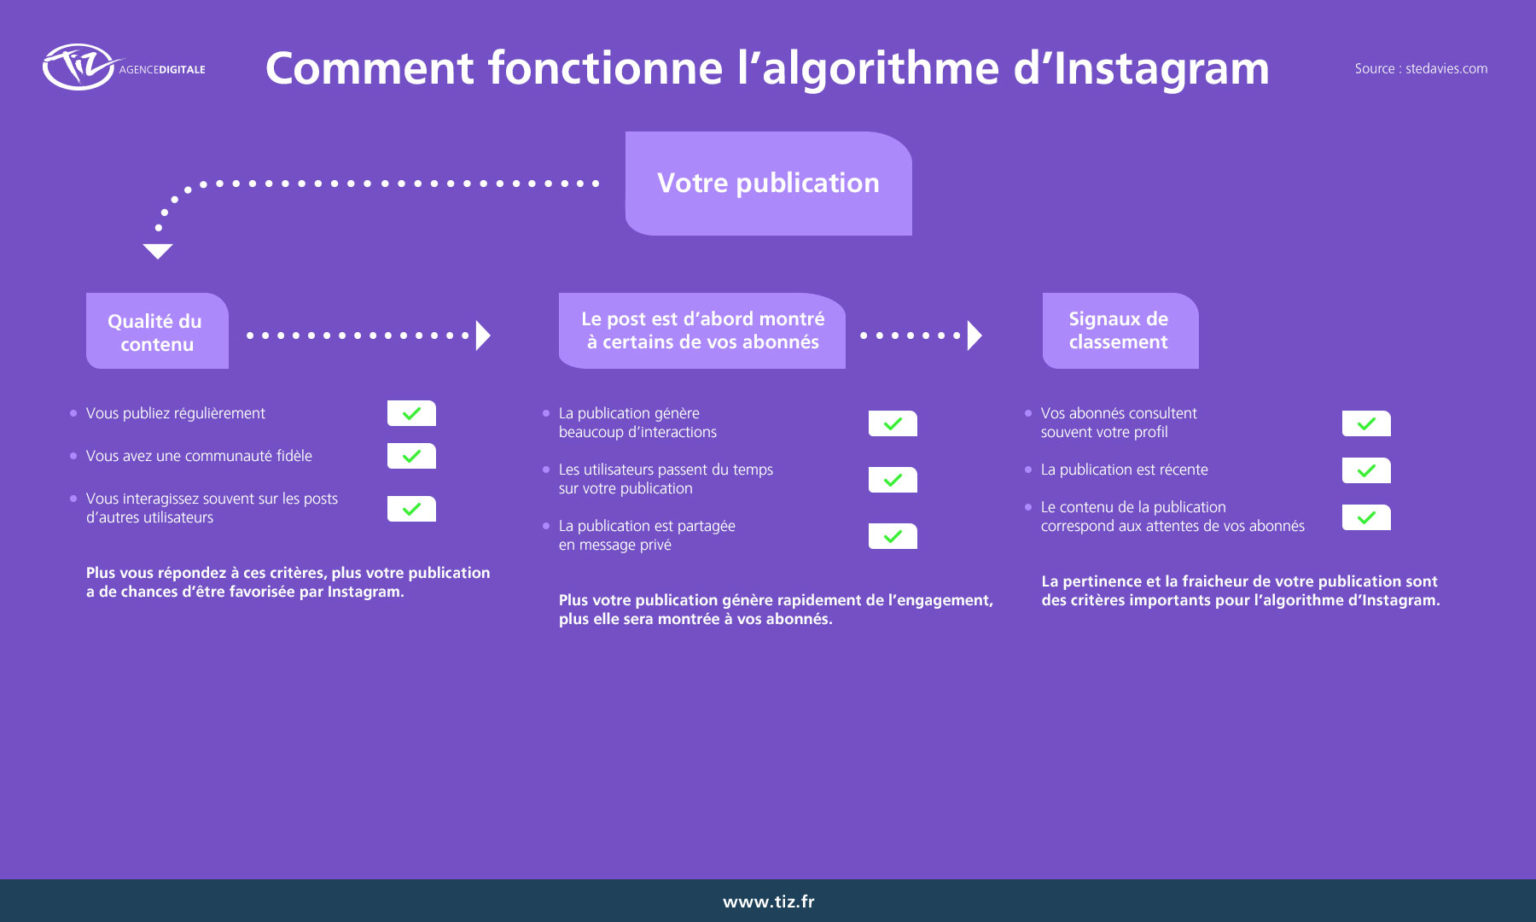 Comment hacker Linkedin, Twitter, Youtube, Facebook, Pinterest, Instagram... ? Jouez simplement avec l'algorithme ! 4